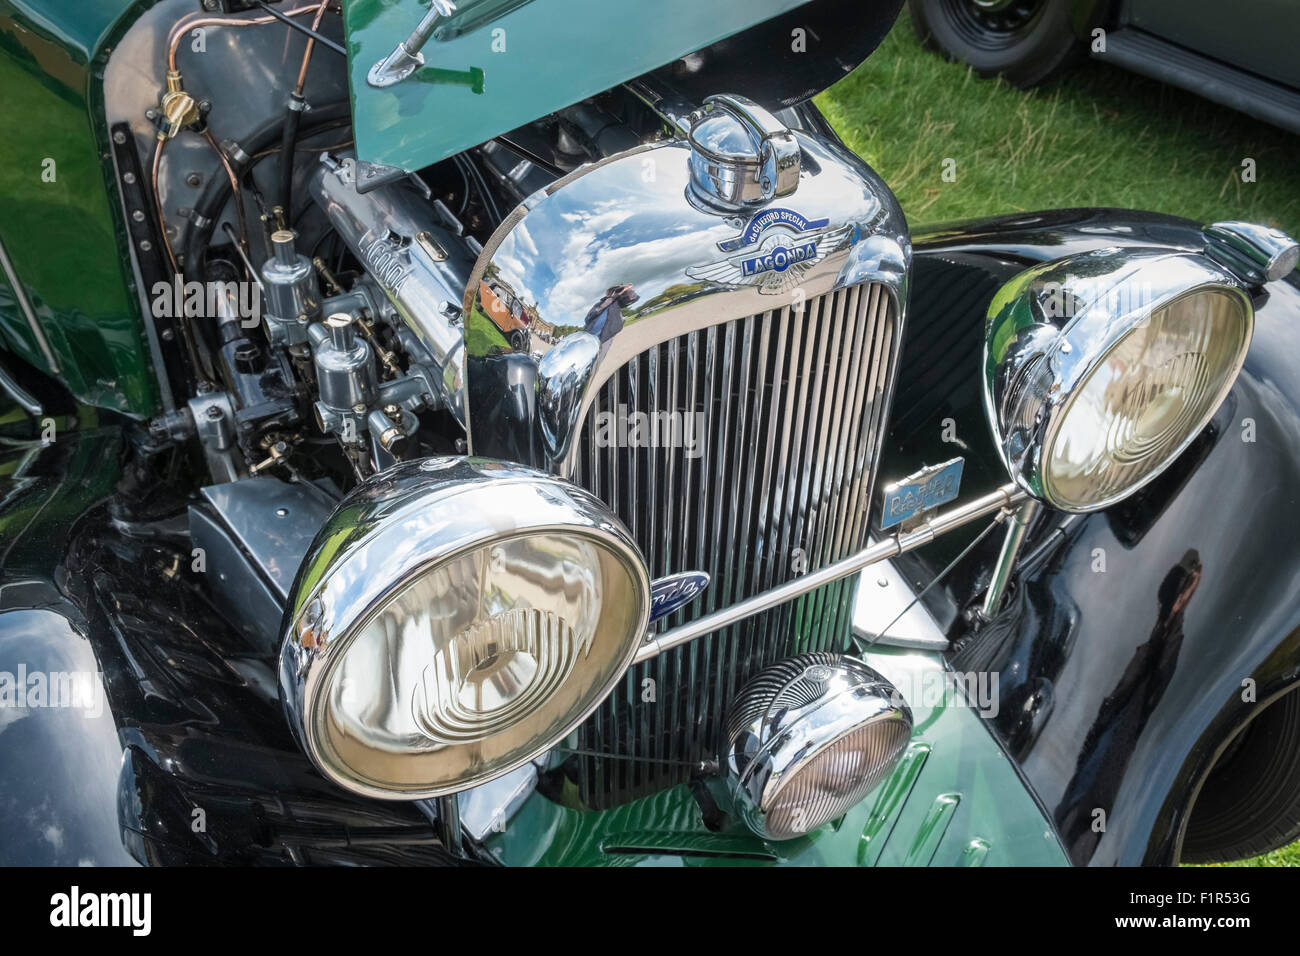 Lagonda deClifford Special vintage car front and engine, on display at a Country Fair event, England UK - Stock Image